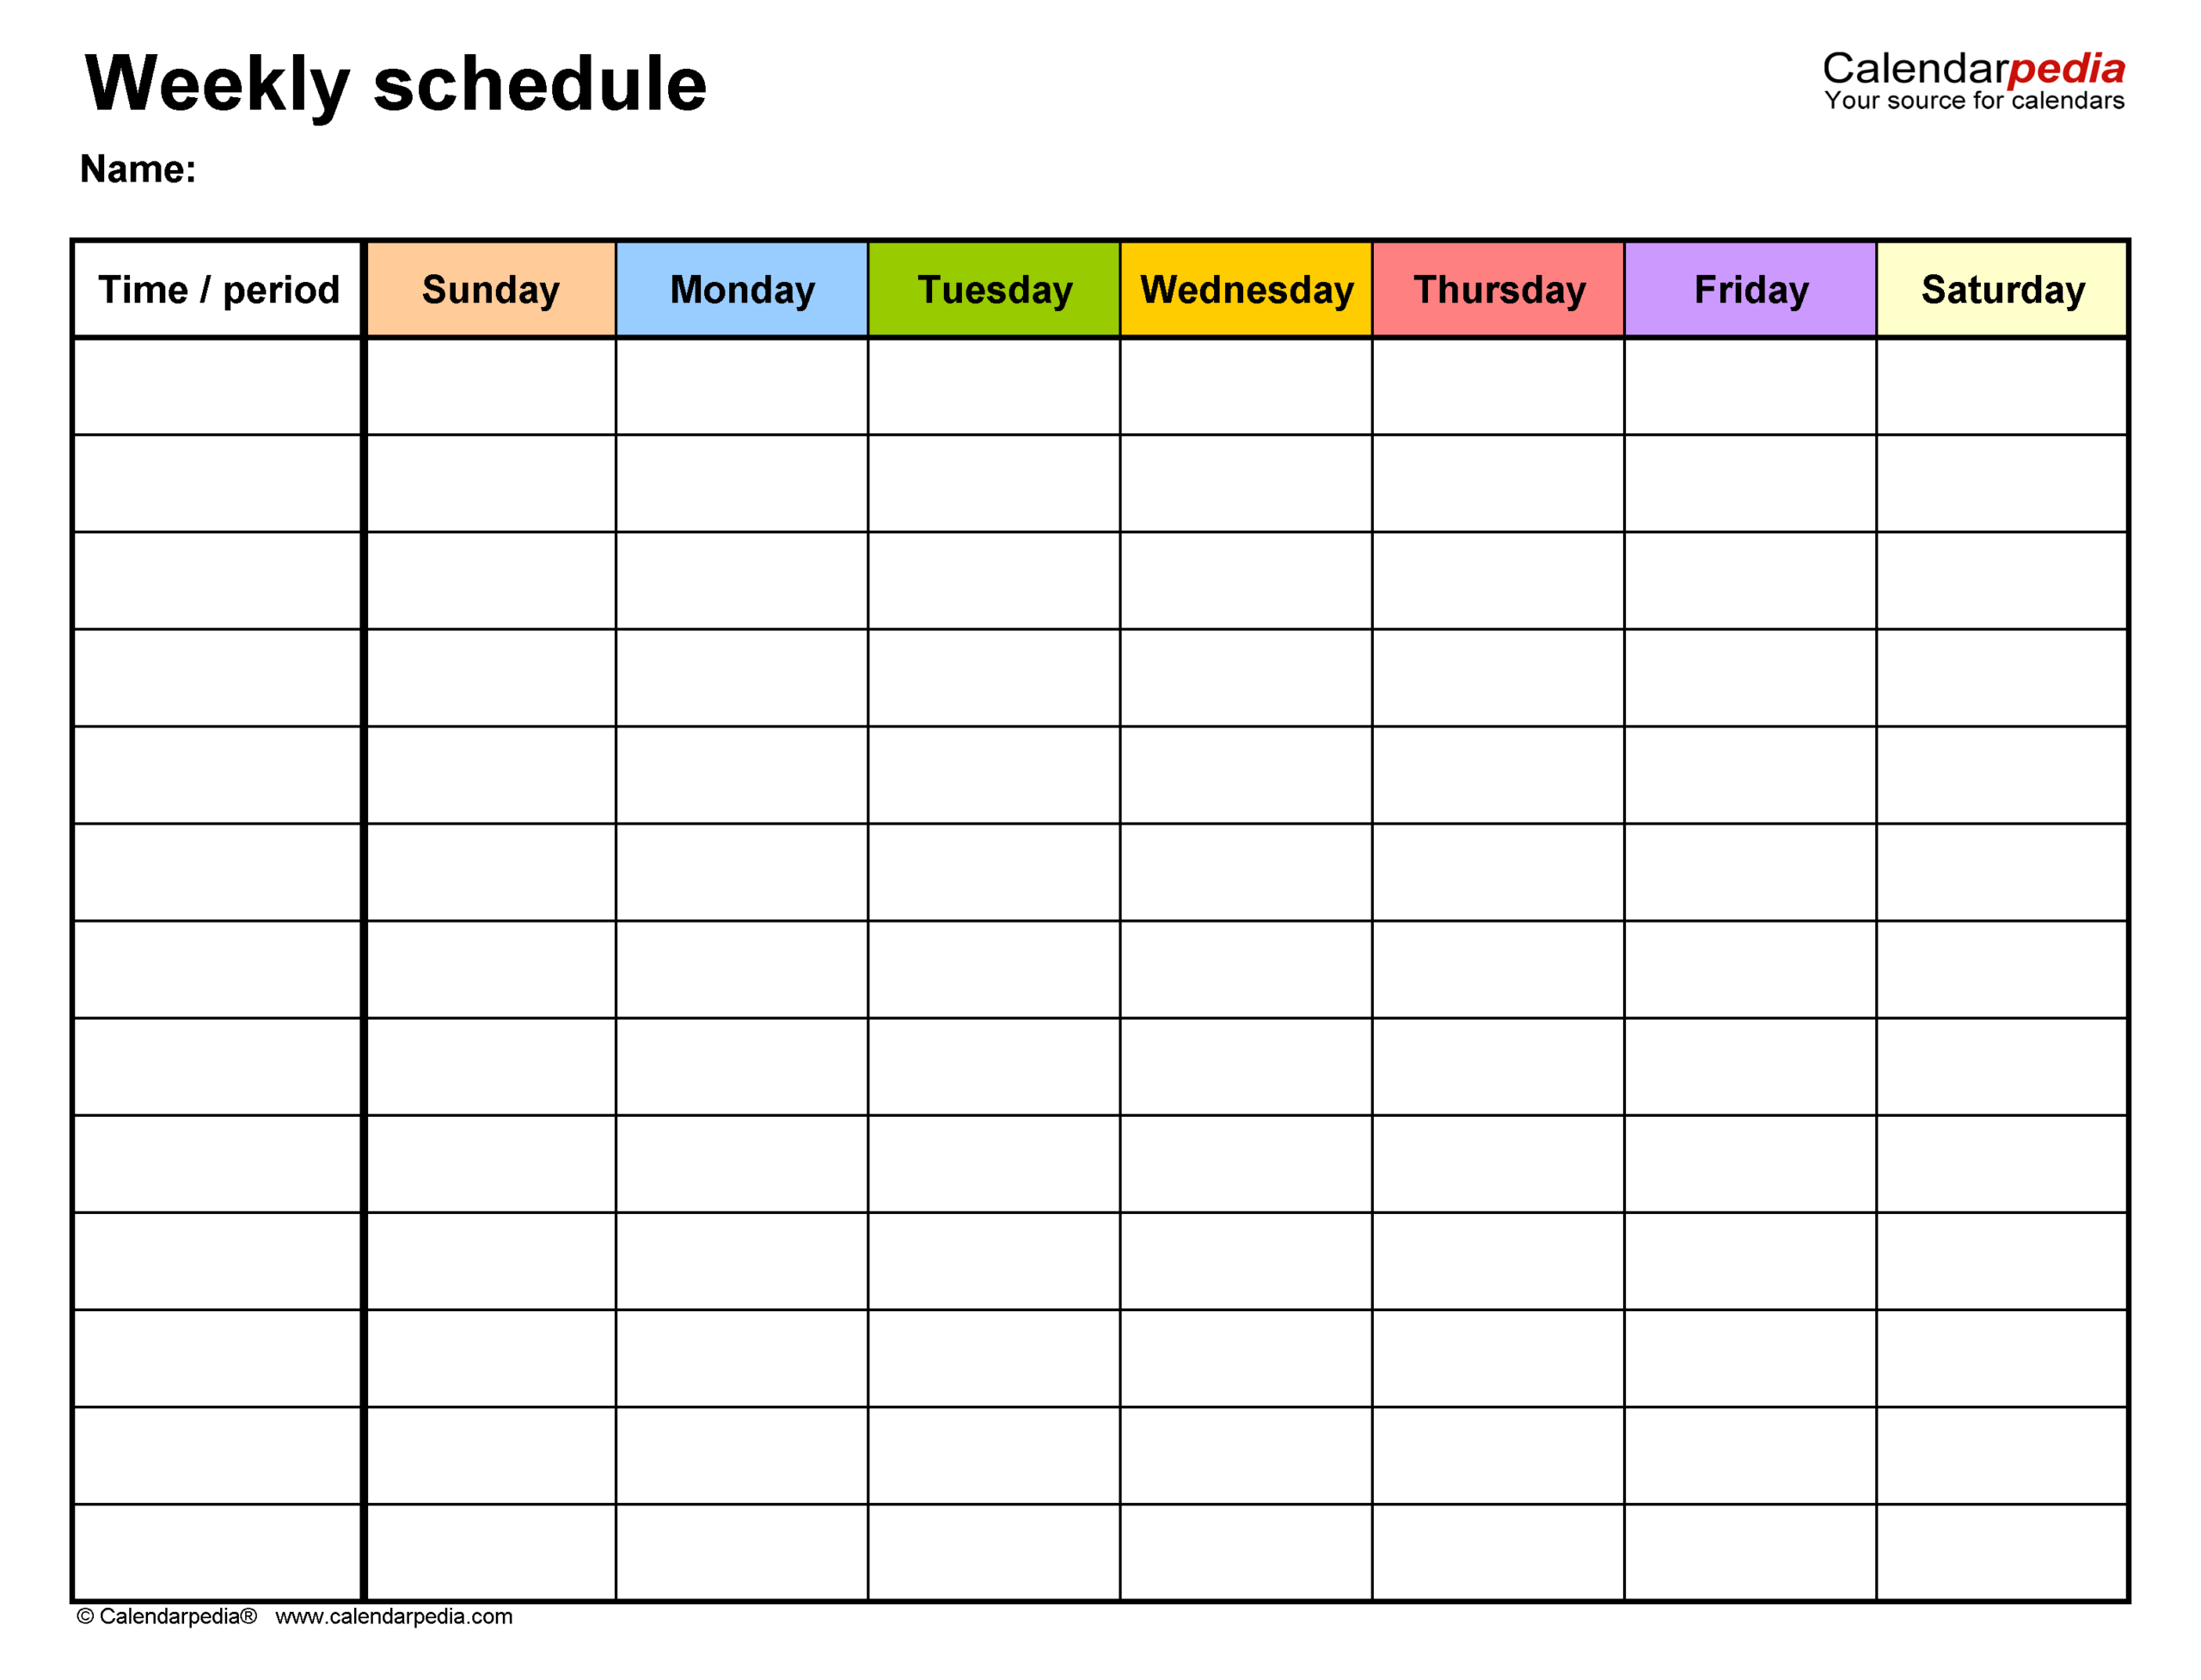 Free Weekly Schedules For Word - 18 Templates